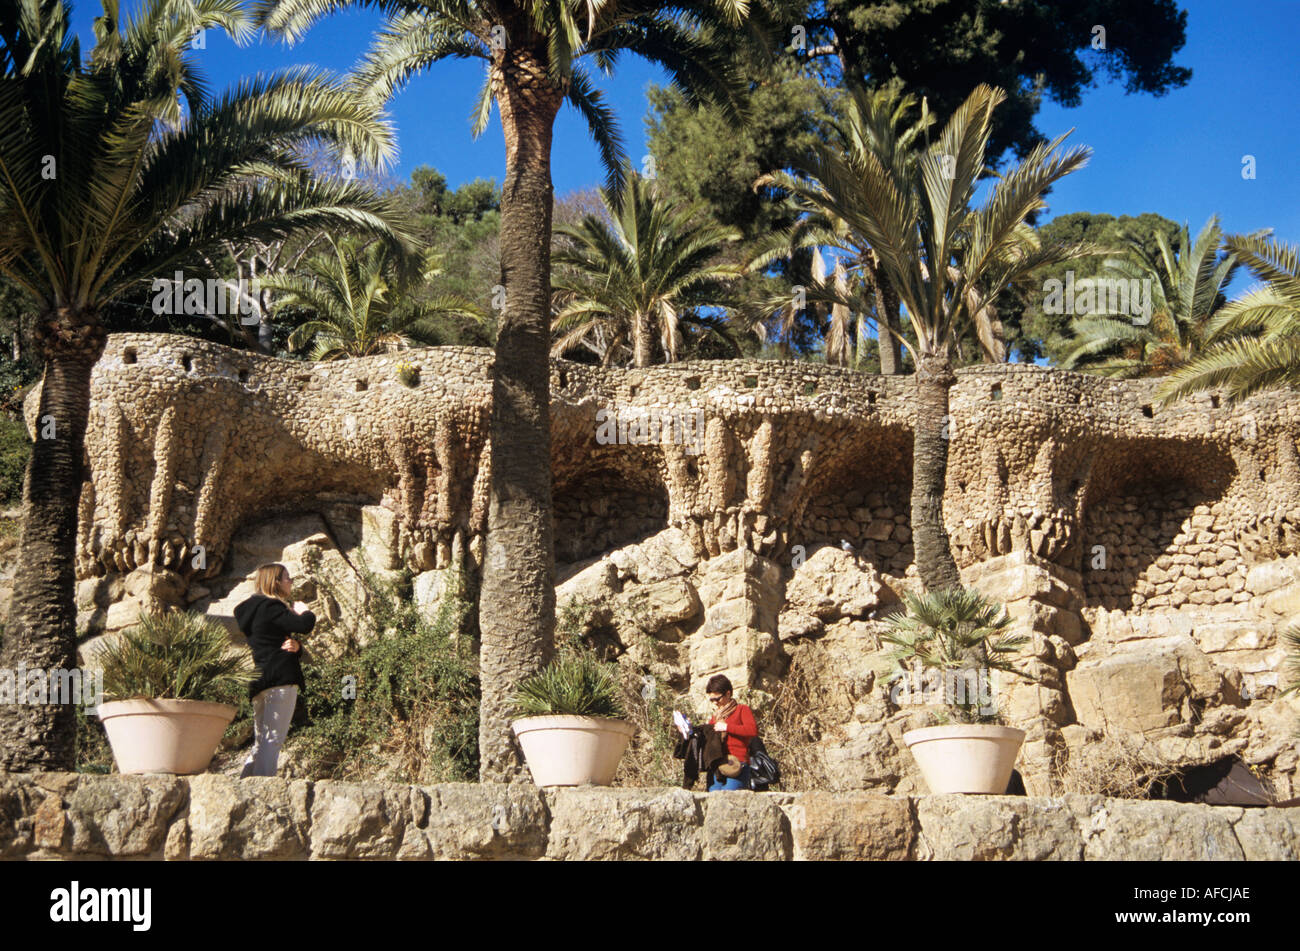 A distinctive walkway in Güell Park created by Antoni Gaudí in Barcelona overlooks a broad plaza - Stock Image